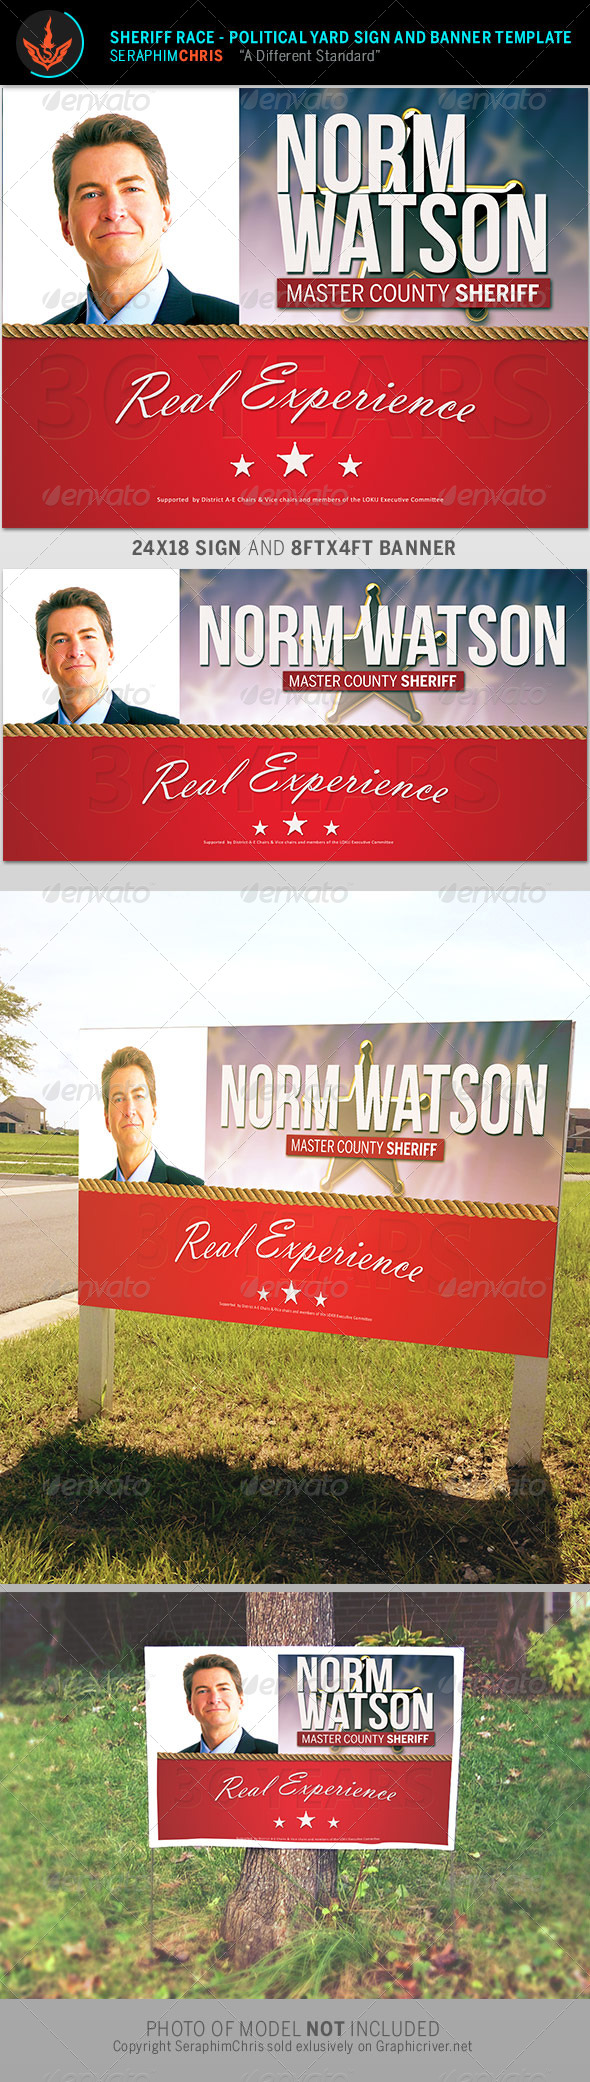 GraphicRiver Sheriff Race Political Sign and Banner Template 8574788